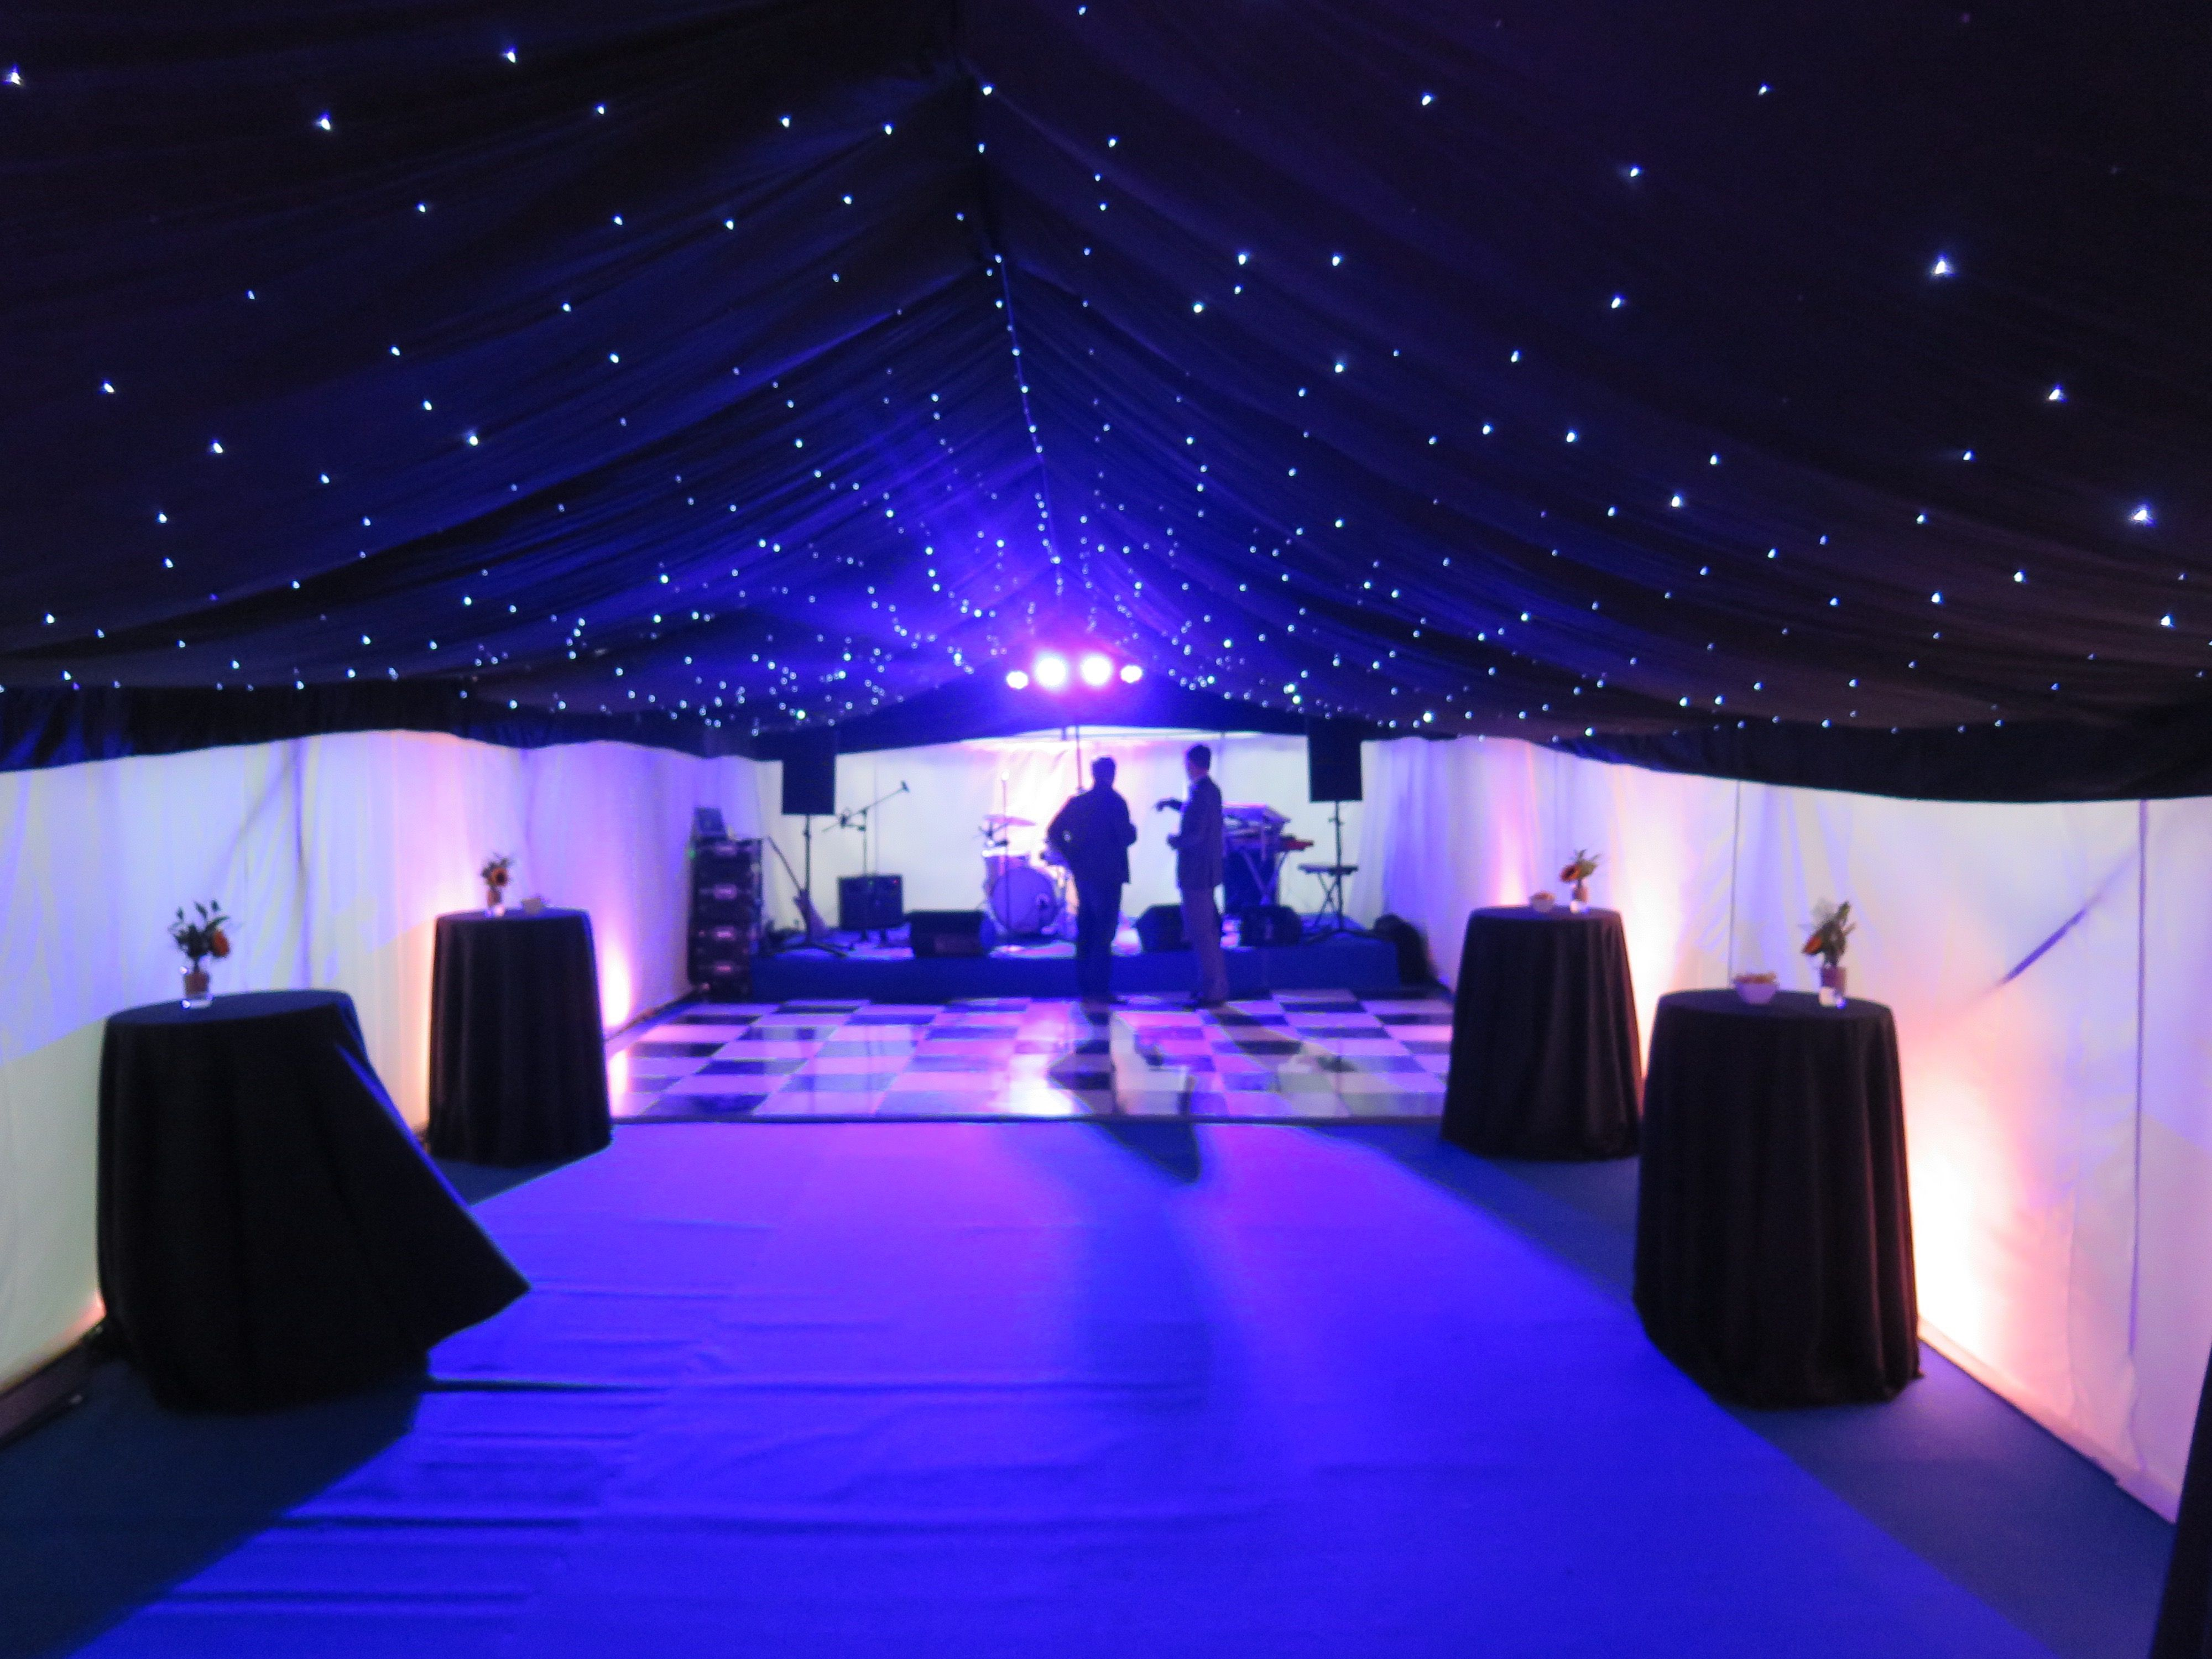 Marquee With Black Star Cloth Roof Lining And White Walls